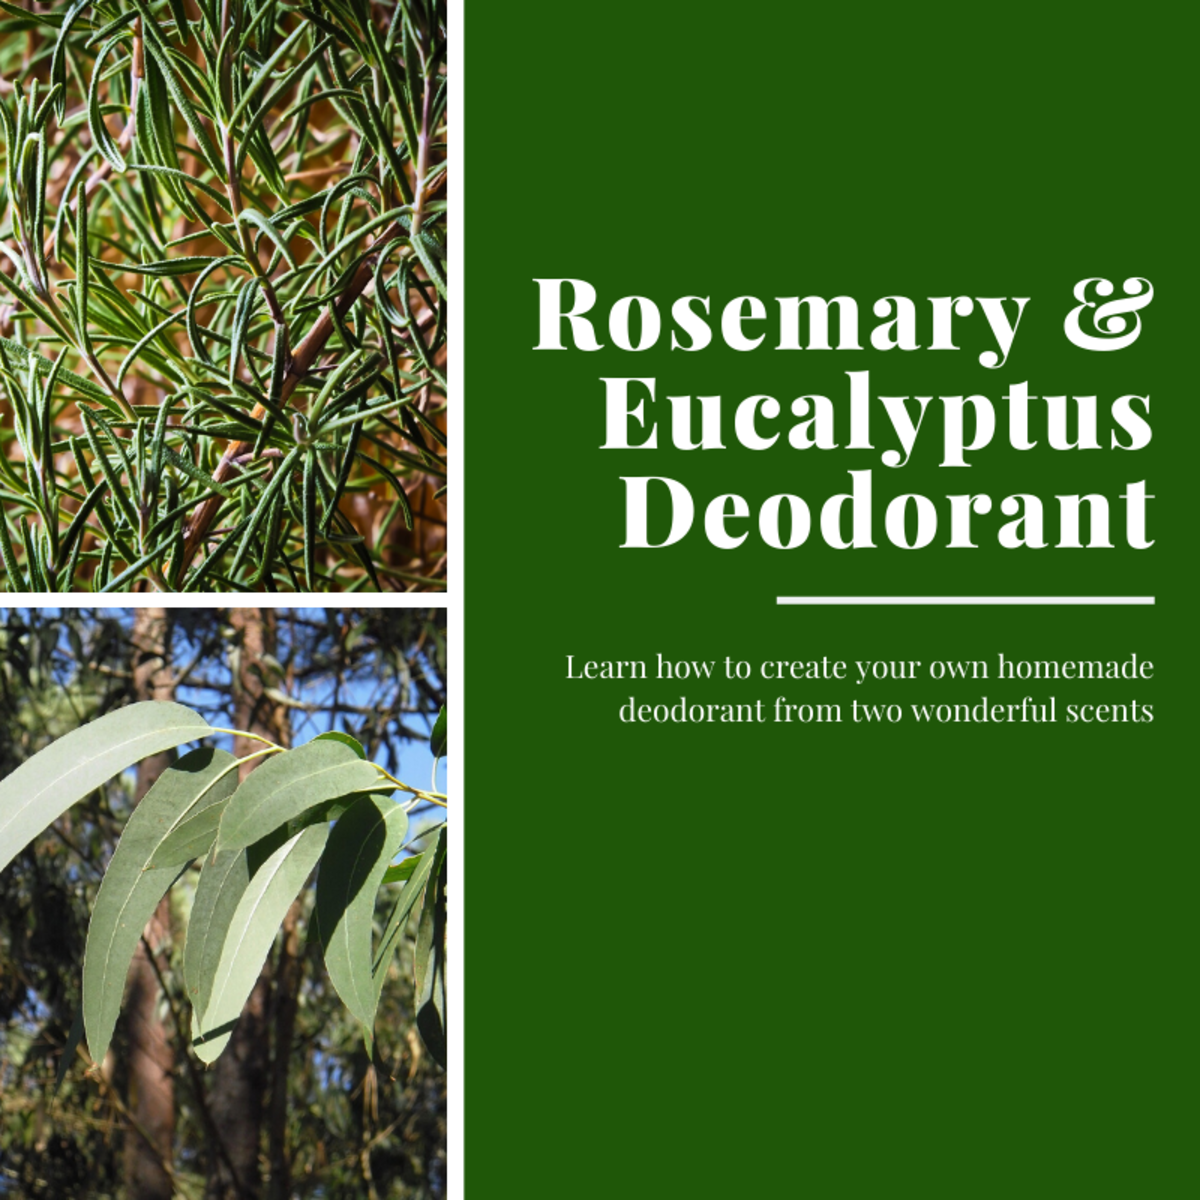 How to Create a Homemade Rosemary and Eucalyptus Deodorant